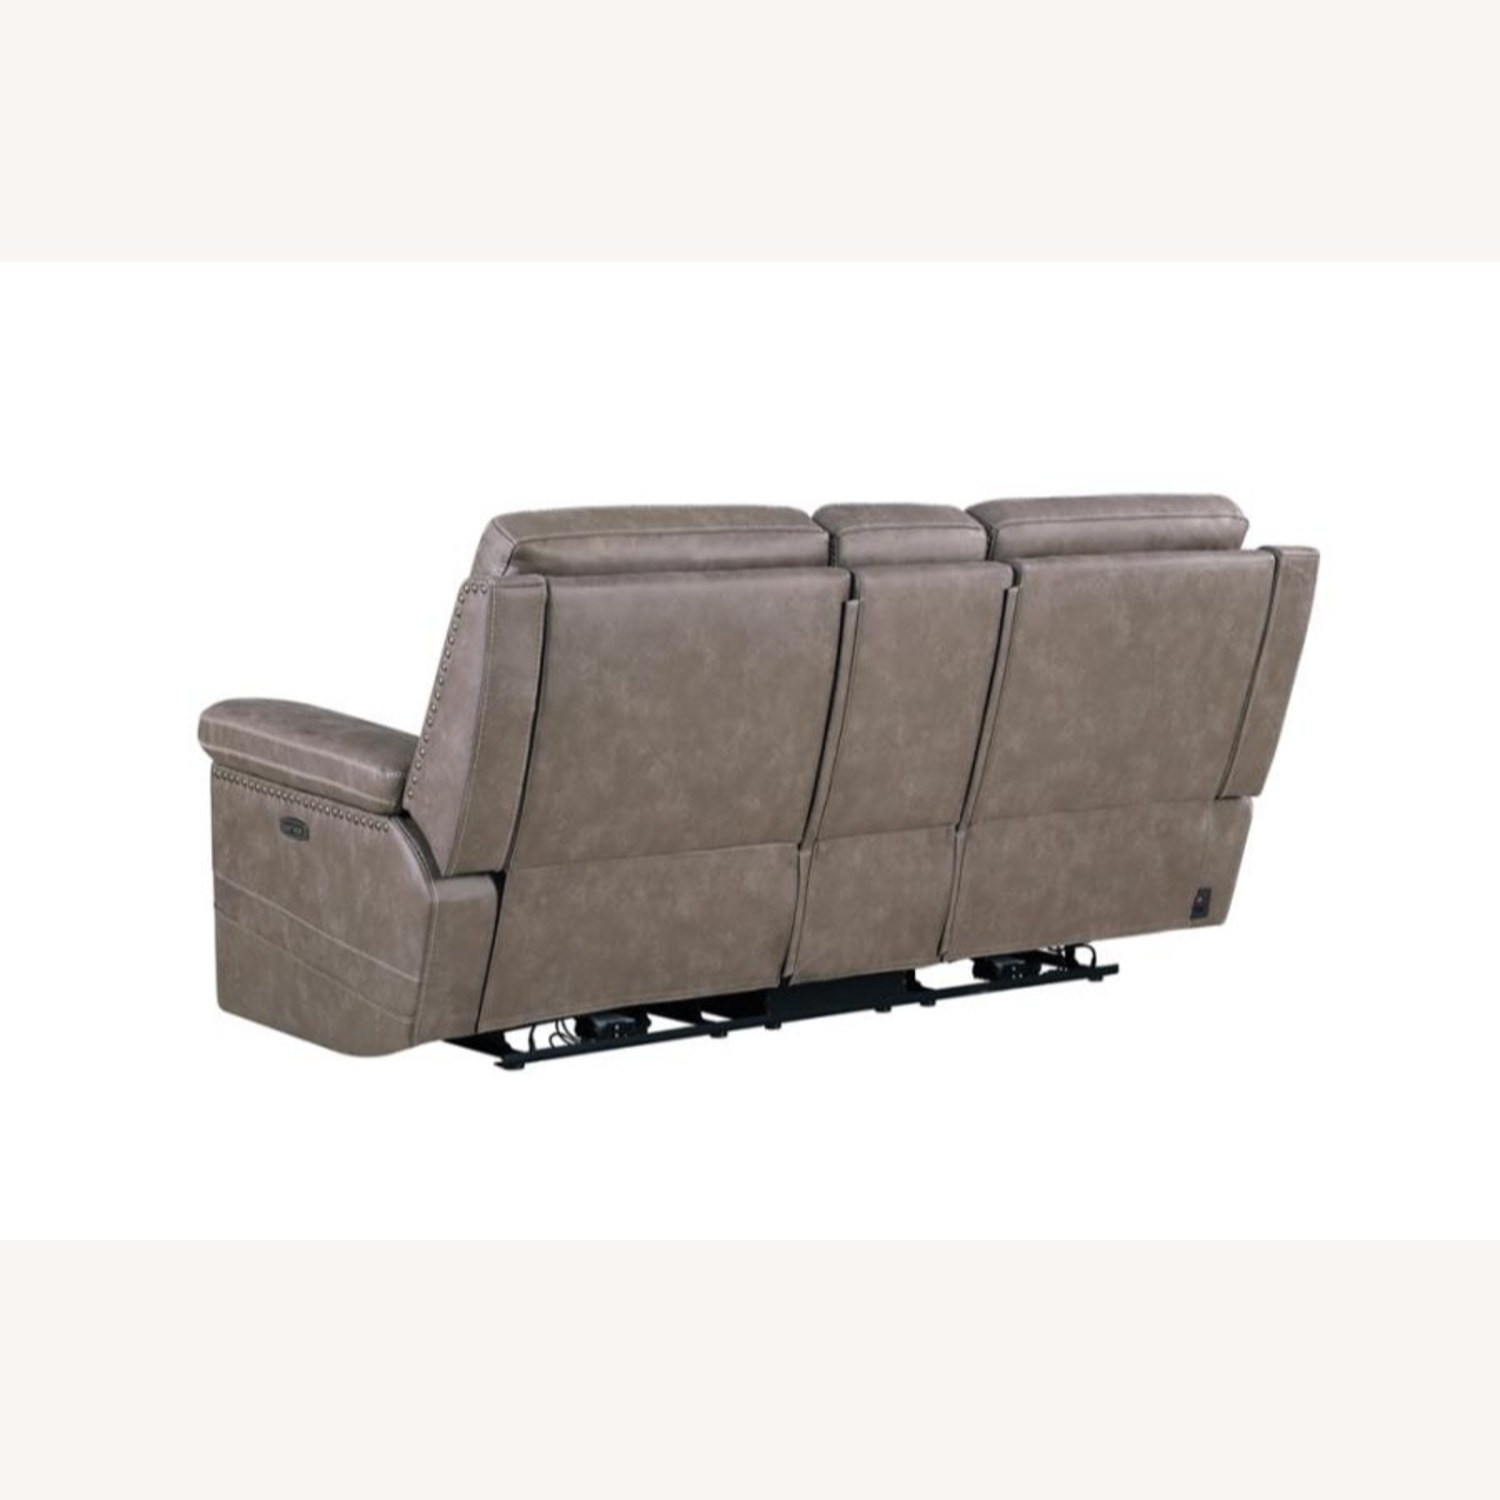 Power Loveseat Recliner In Taupe Upholstery - image-3